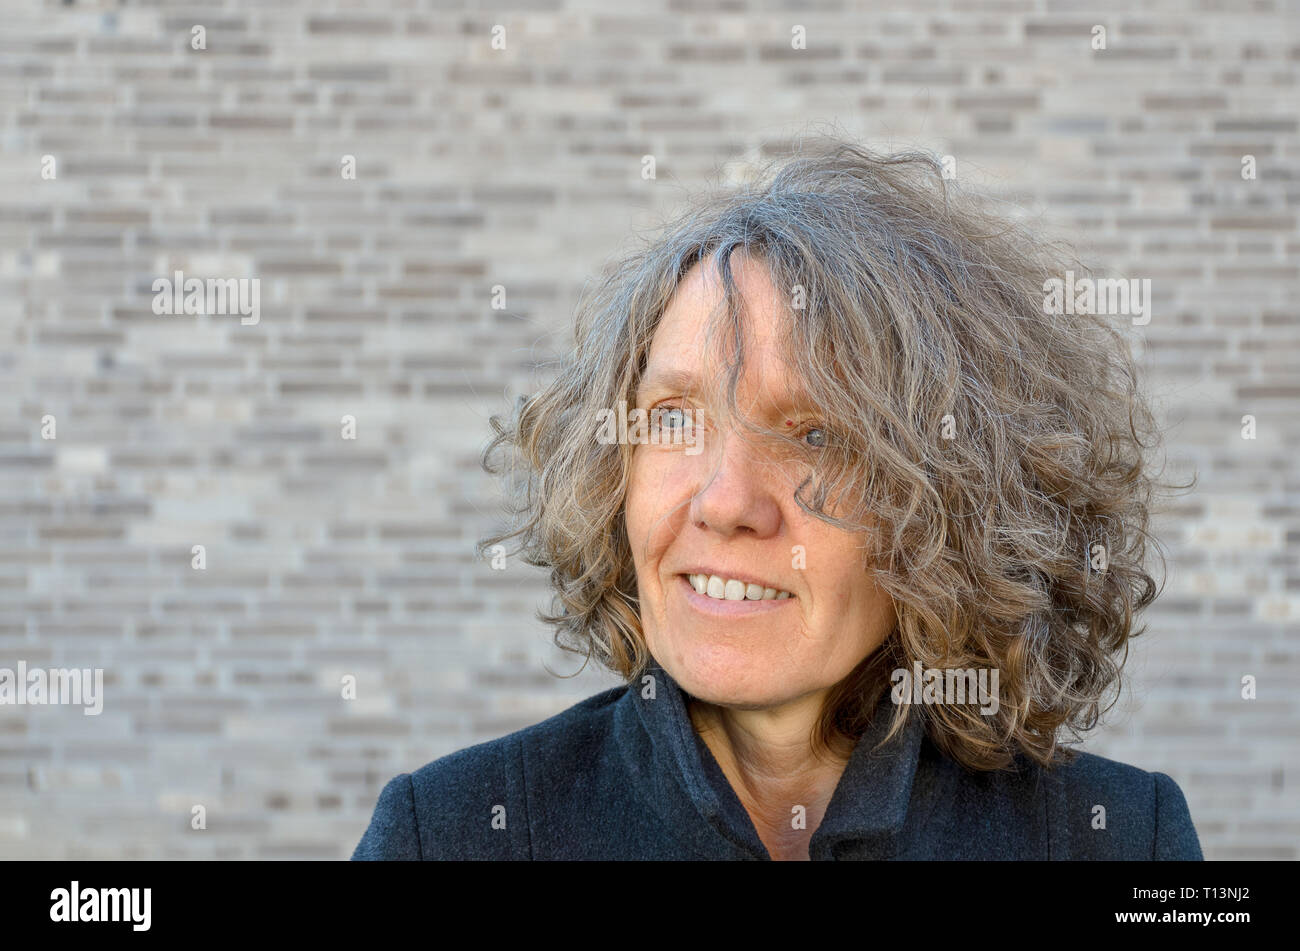 Mature smiling woman with curly tousled hair looking off to the side as she poses in front of a grey brick wall with copy space - Stock Image